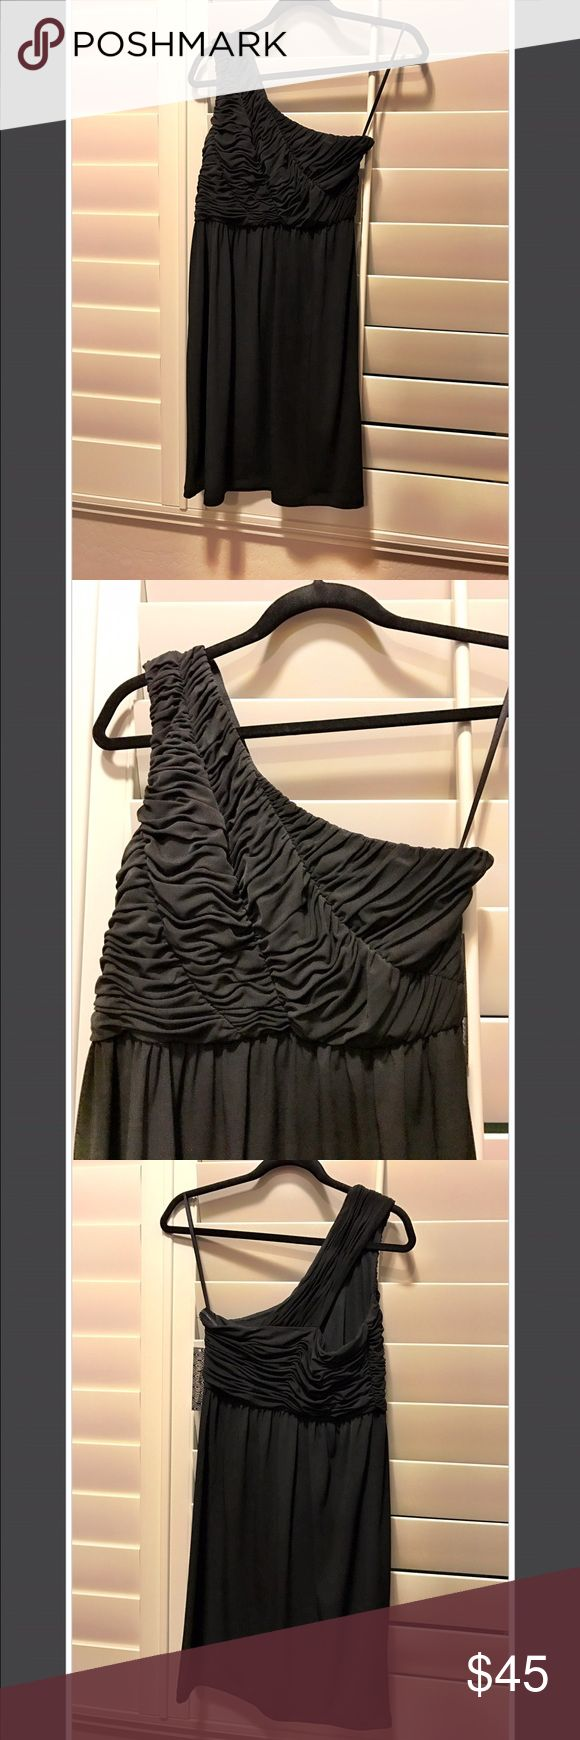 Gianna Bini Black One Shoulder Dress Small NTW Gianna Bini Black One Shoulder Dress Small New With Tags. Perfect condition! Comes from Smoke Free Home! Gianni Bini Dresses One Shoulder